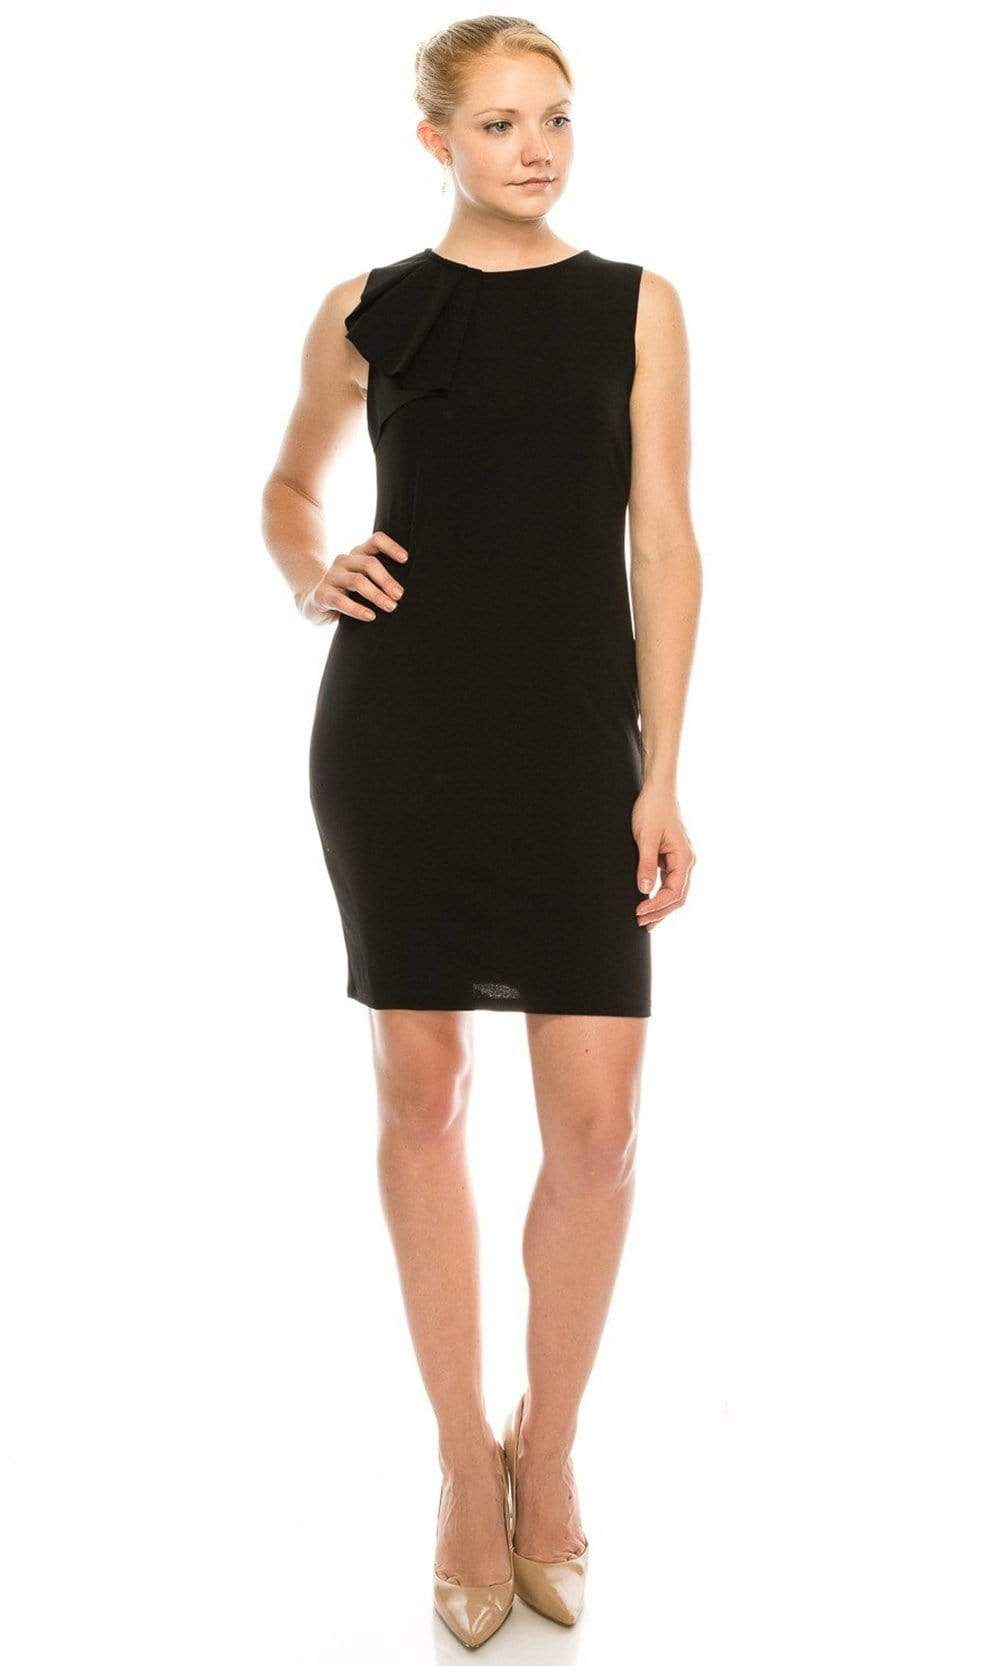 Bebe - 701087B Pleated Ruffle Neck Sleeveless Sheath Mini Dress from Bebe